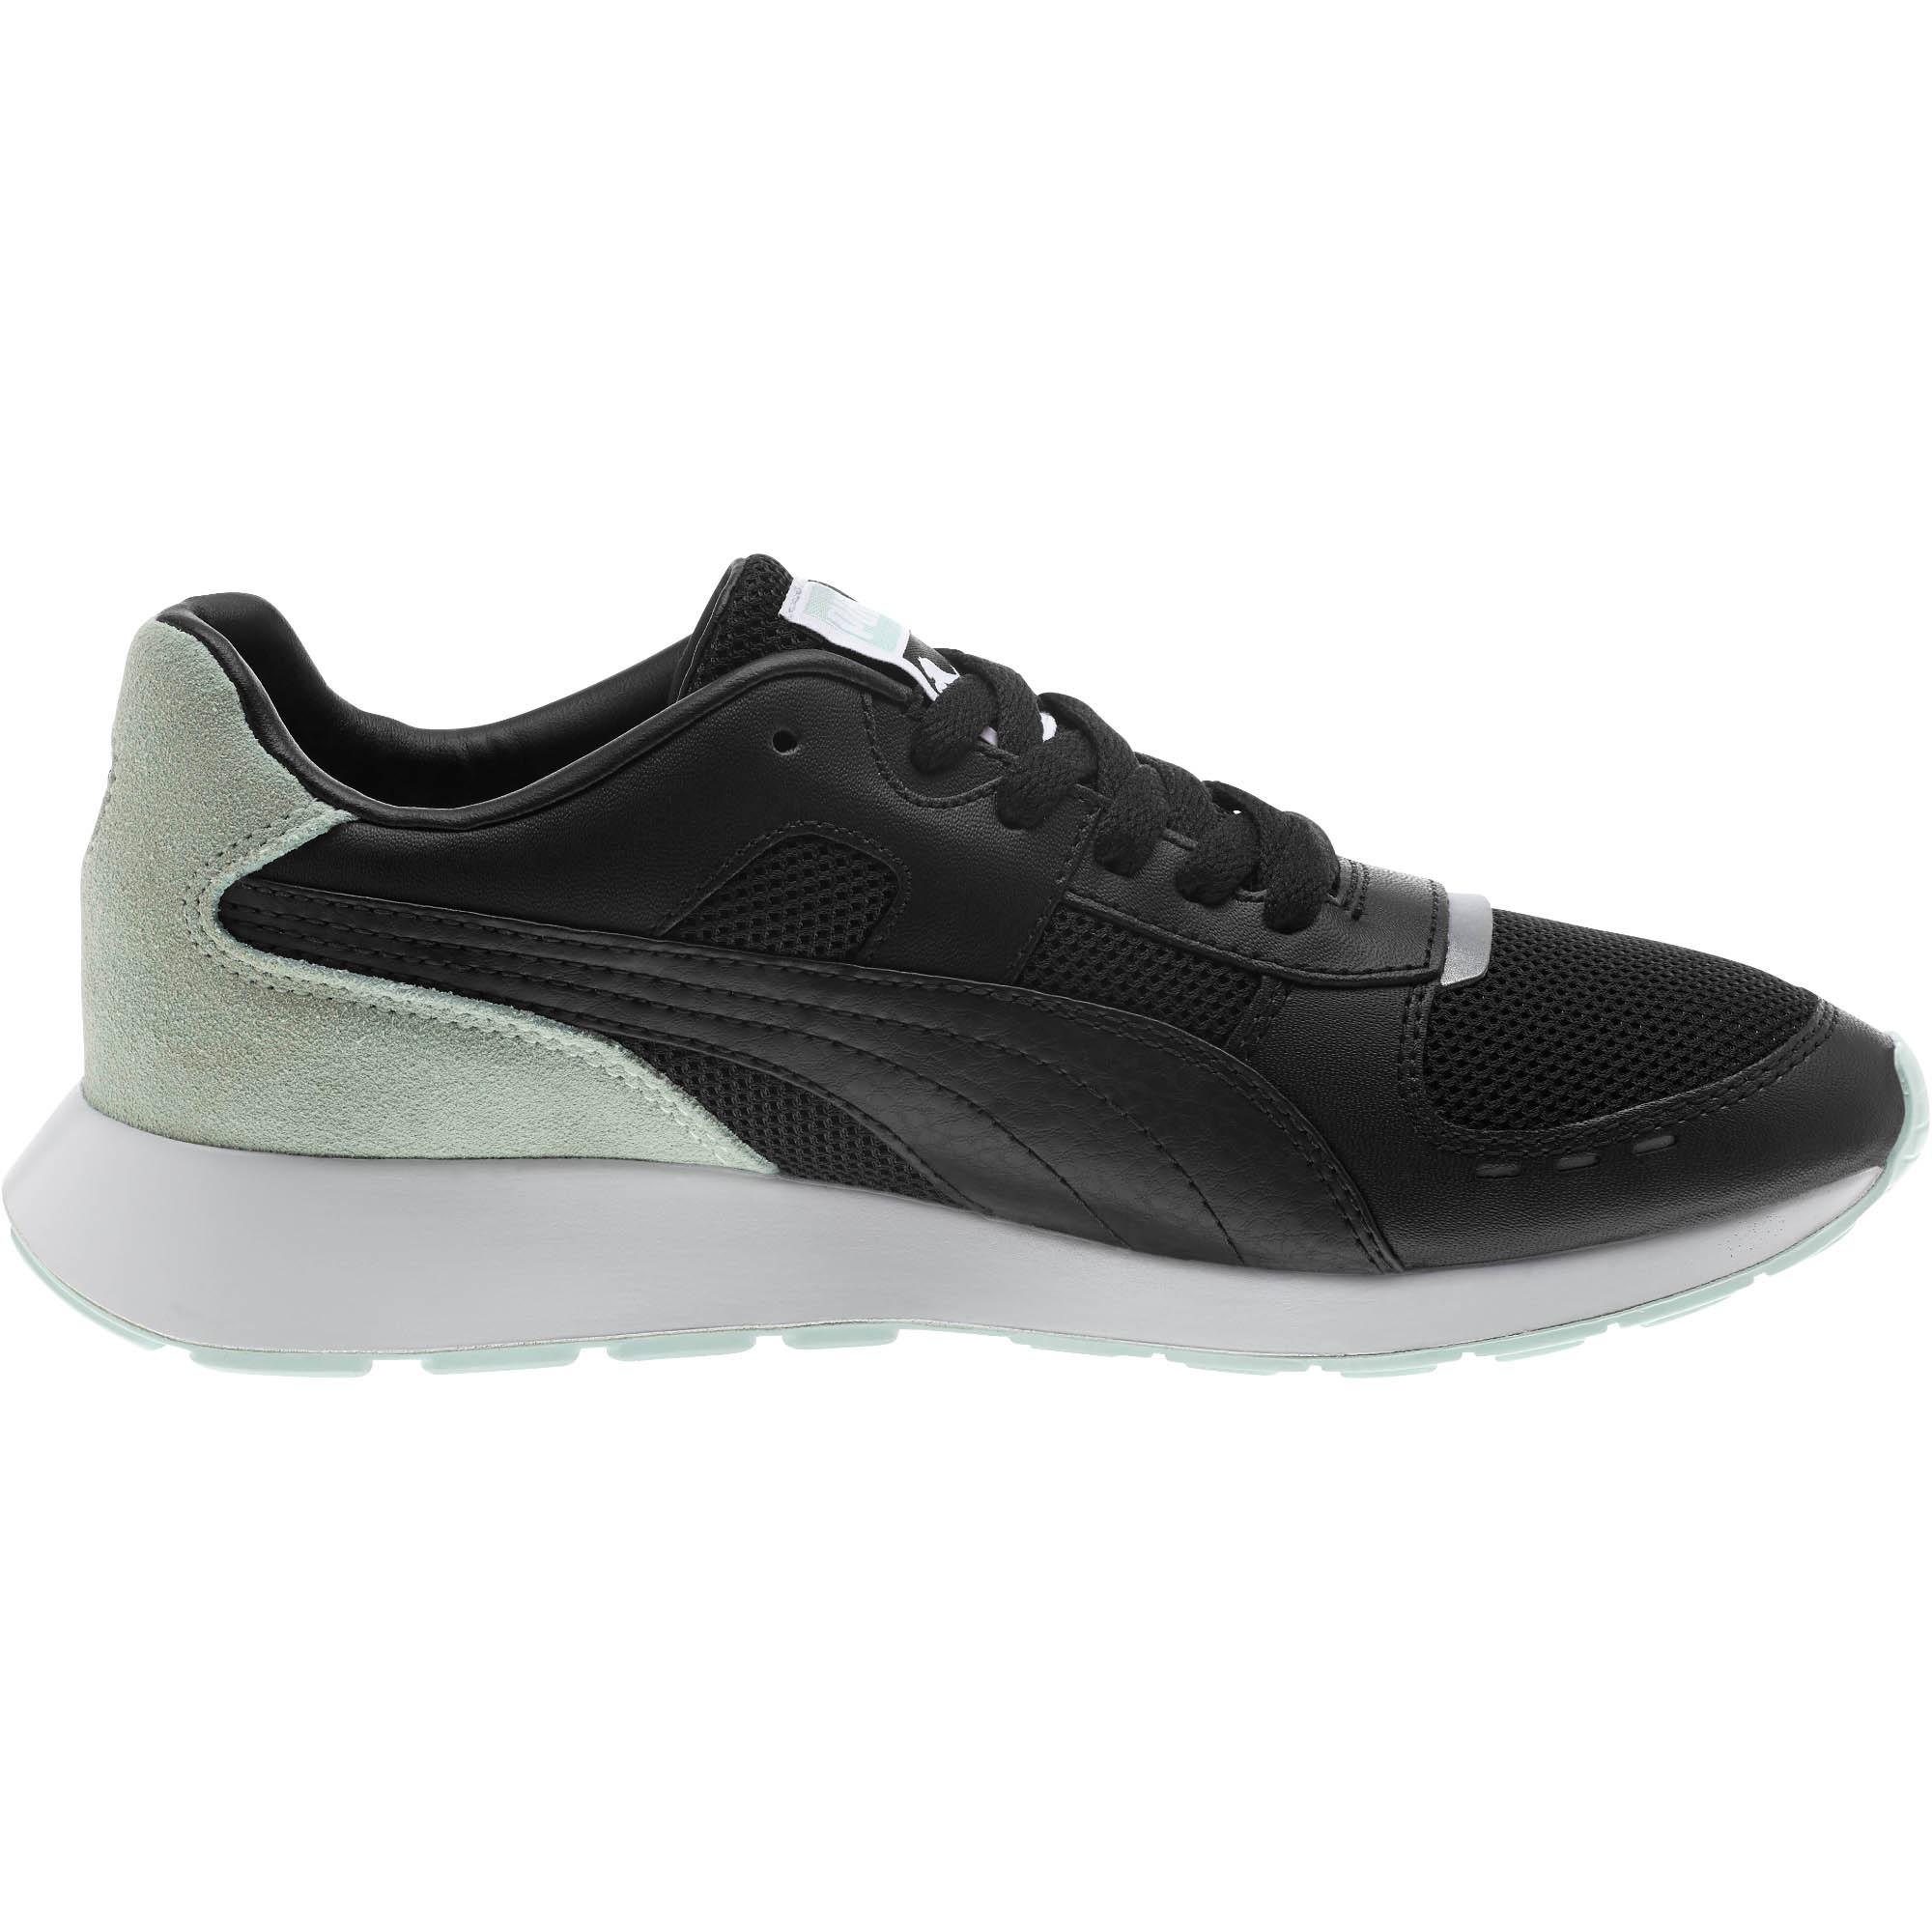 PUMA-Women-039-s-RS-150-Contrast-Sneakers thumbnail 10